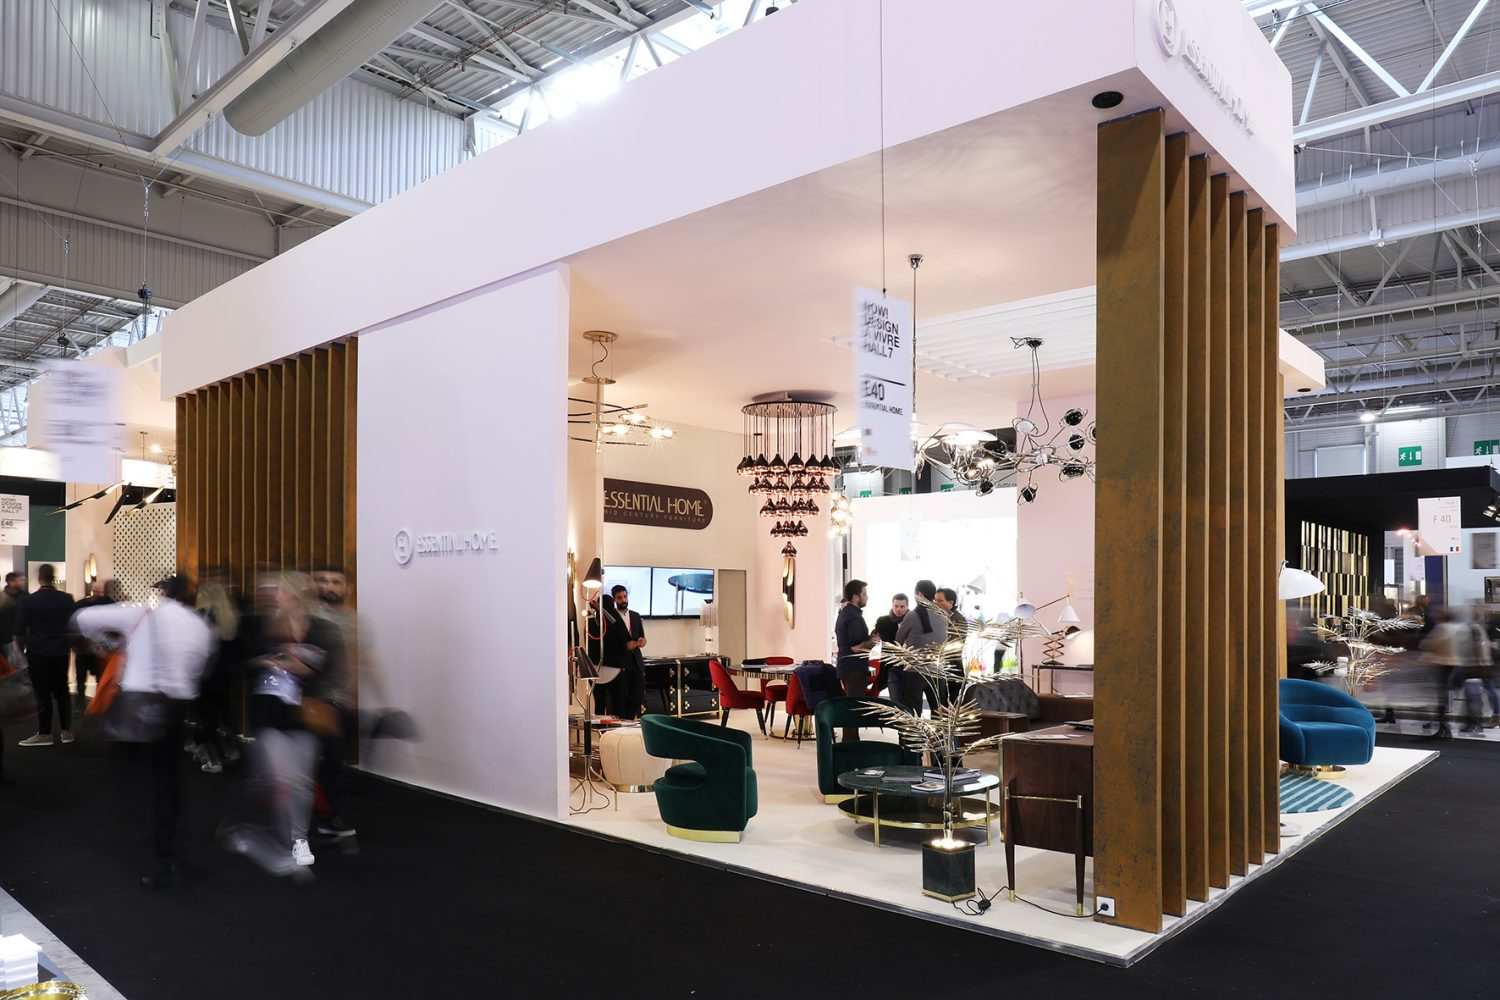 Here's All You Need to Know About Maison et Objet Paris 2017 maison et objet paris 2017 Here's All You Need to Know About Maison et Objet Paris 2017 Heres All You Need to Know About Maison et Objet Paris 2017